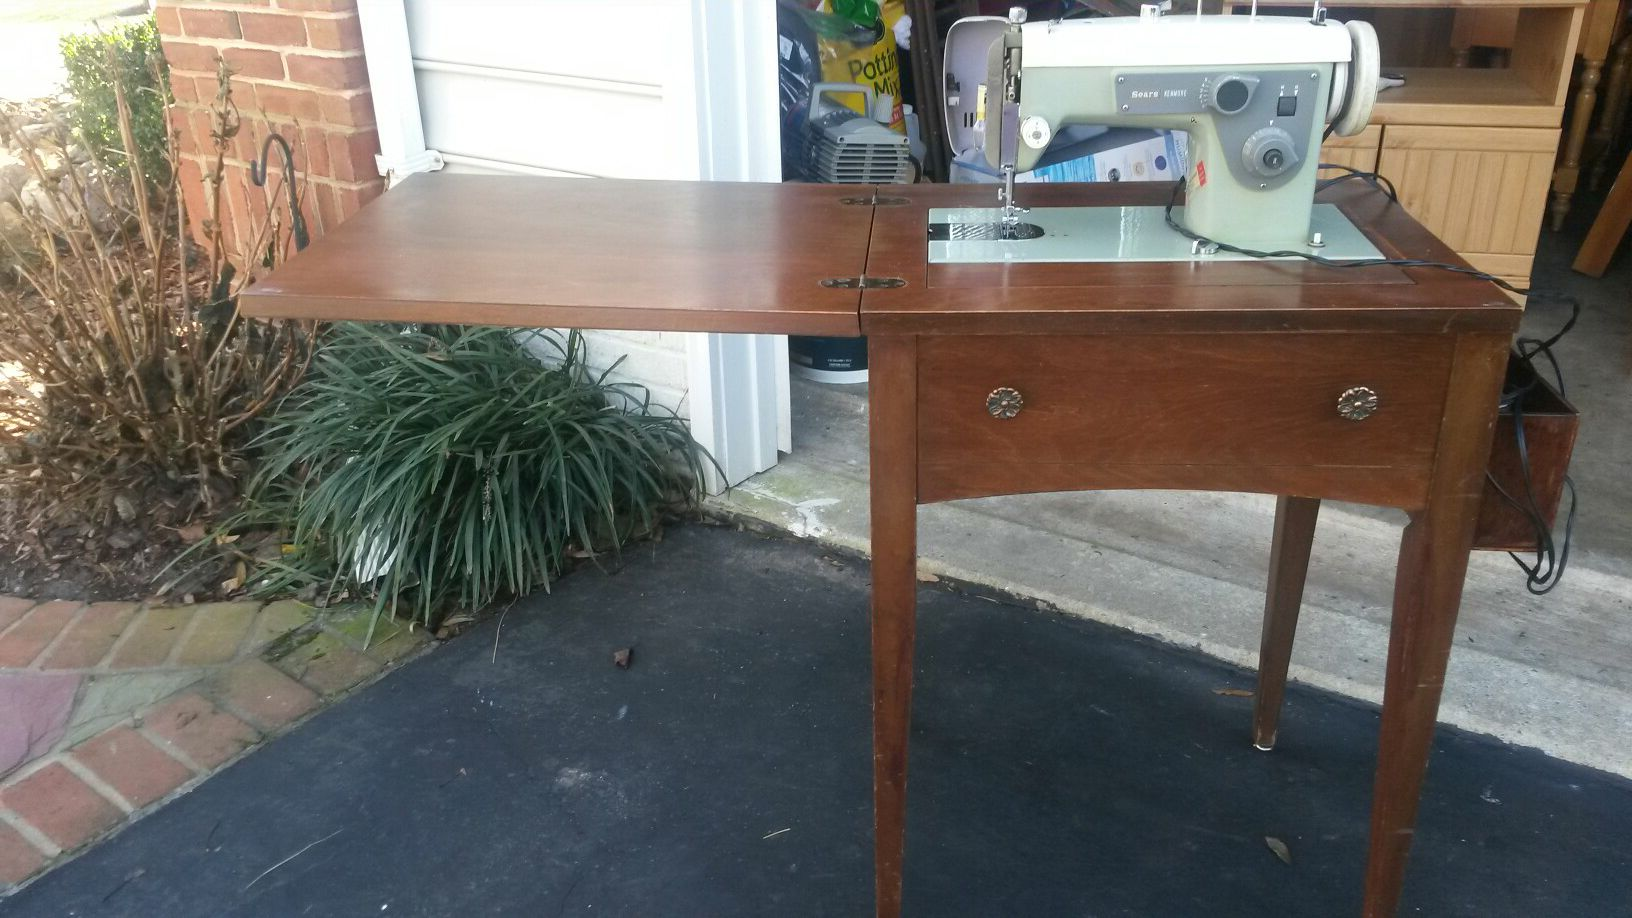 Sears sewing machine with solid cherry wood cabinet